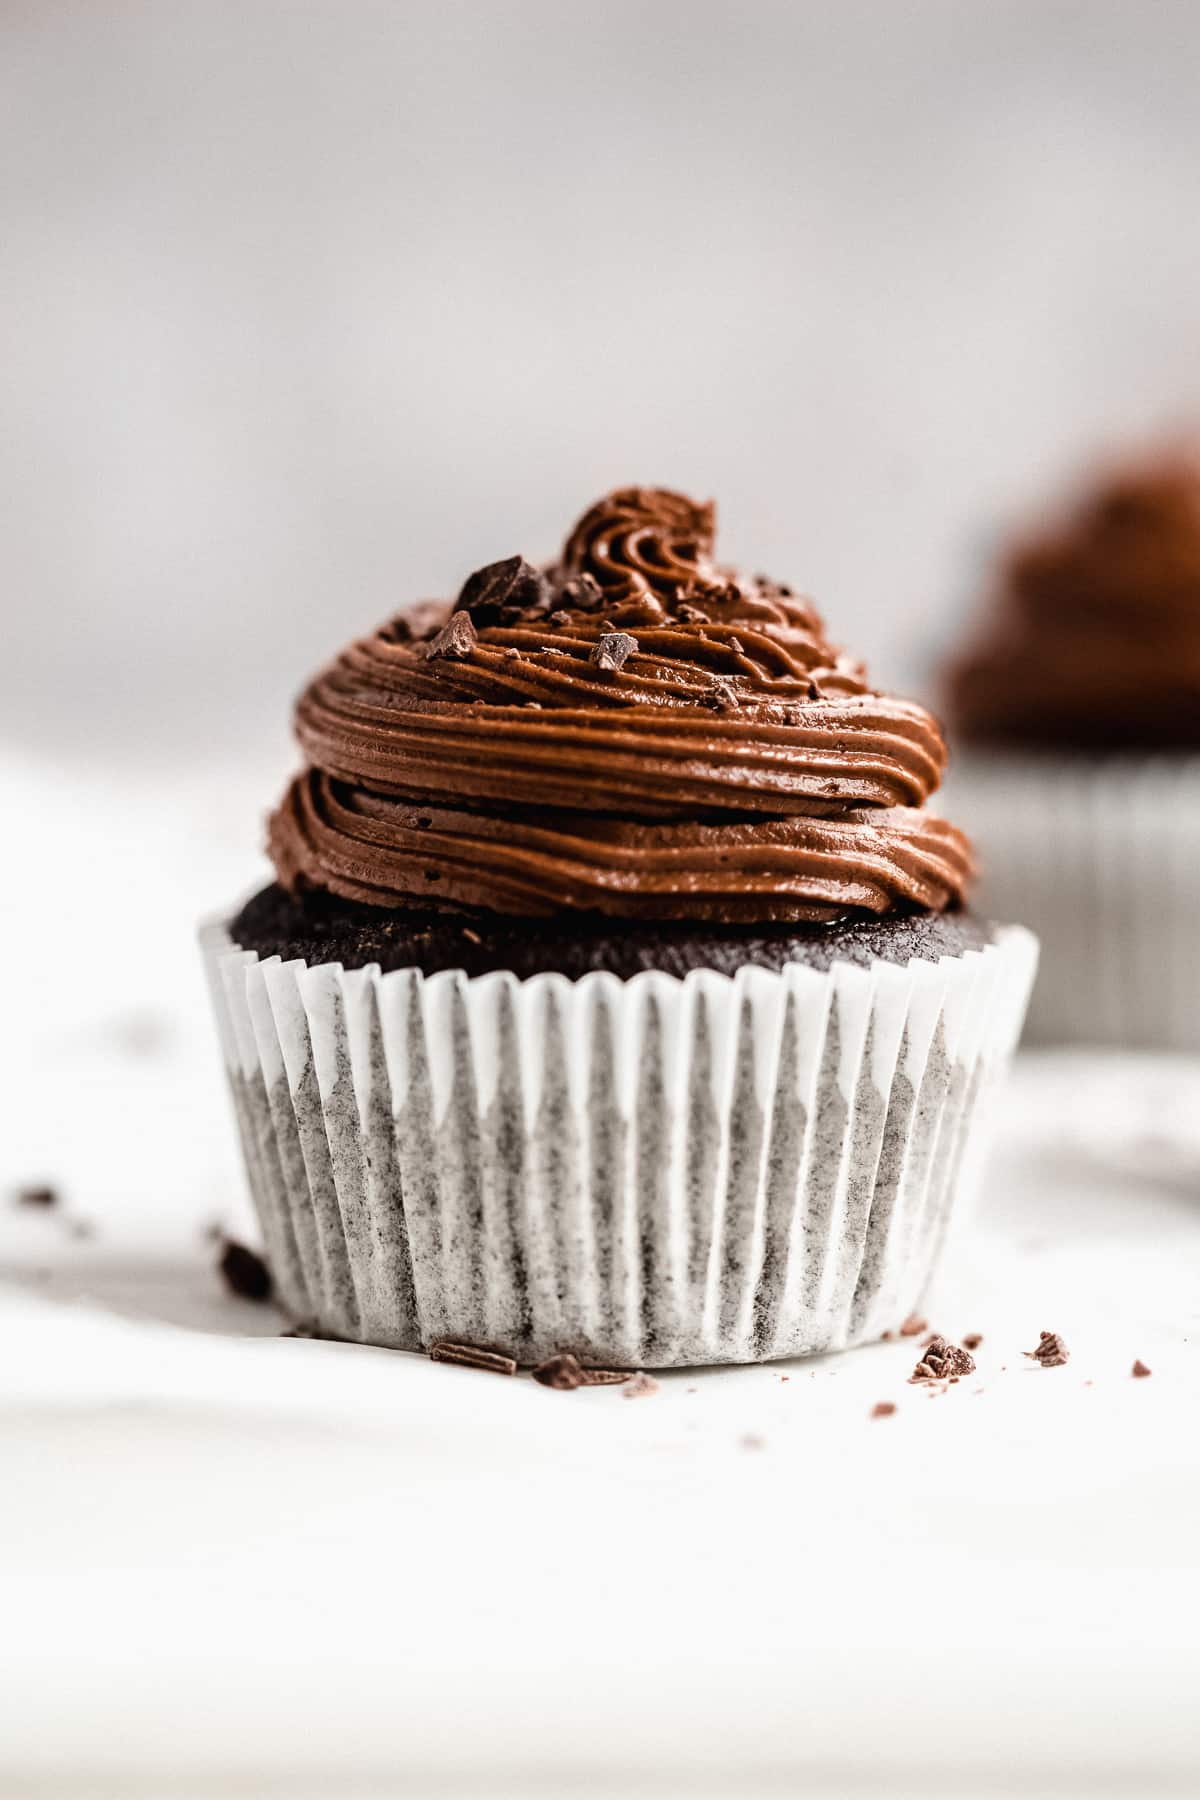 Close up side view photo of a single Gluten-free Chocolate Cupcake sitting on white parchment paper.